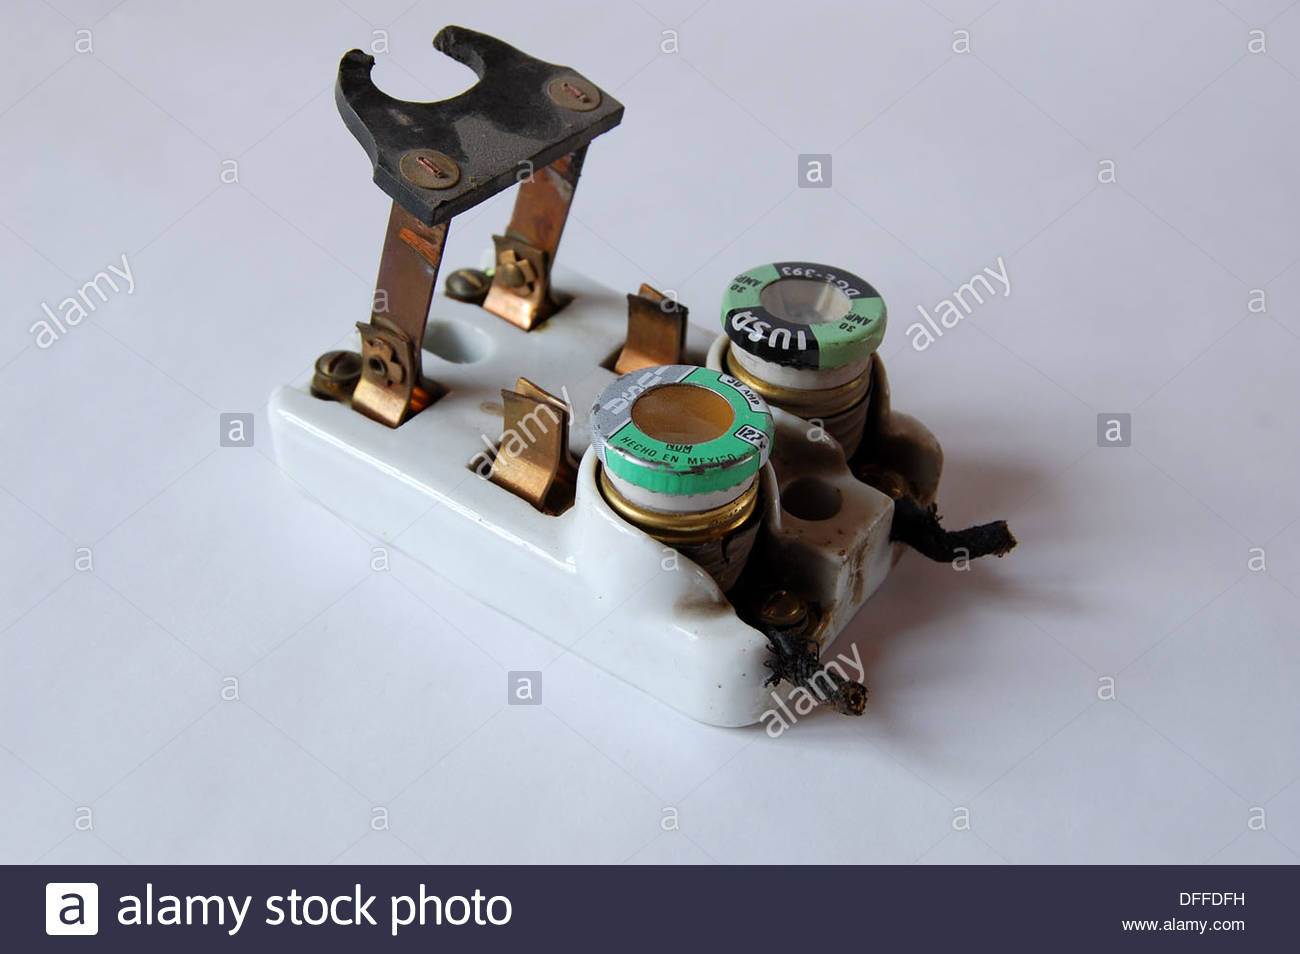 hight resolution of 1950s vintage ceramic fuse box electrical circuit breaker with fuses old fuse box light fuse for breaker box